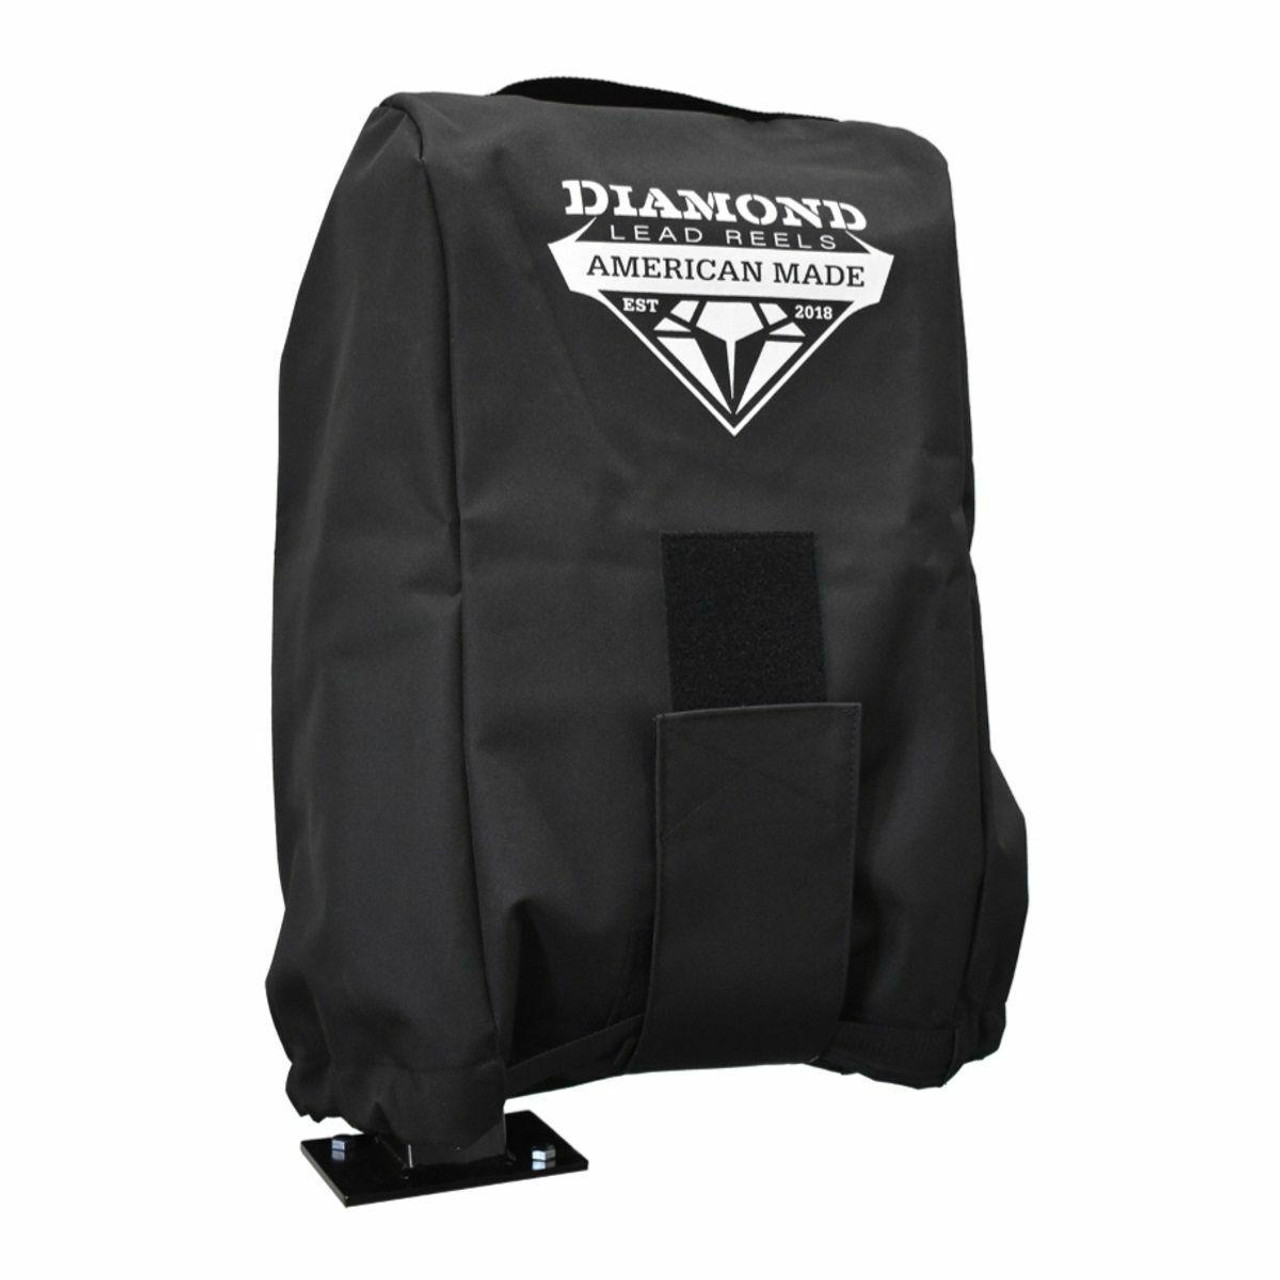 Diamond Lead Reels Double Reel Cover - AWCDBL-BLK